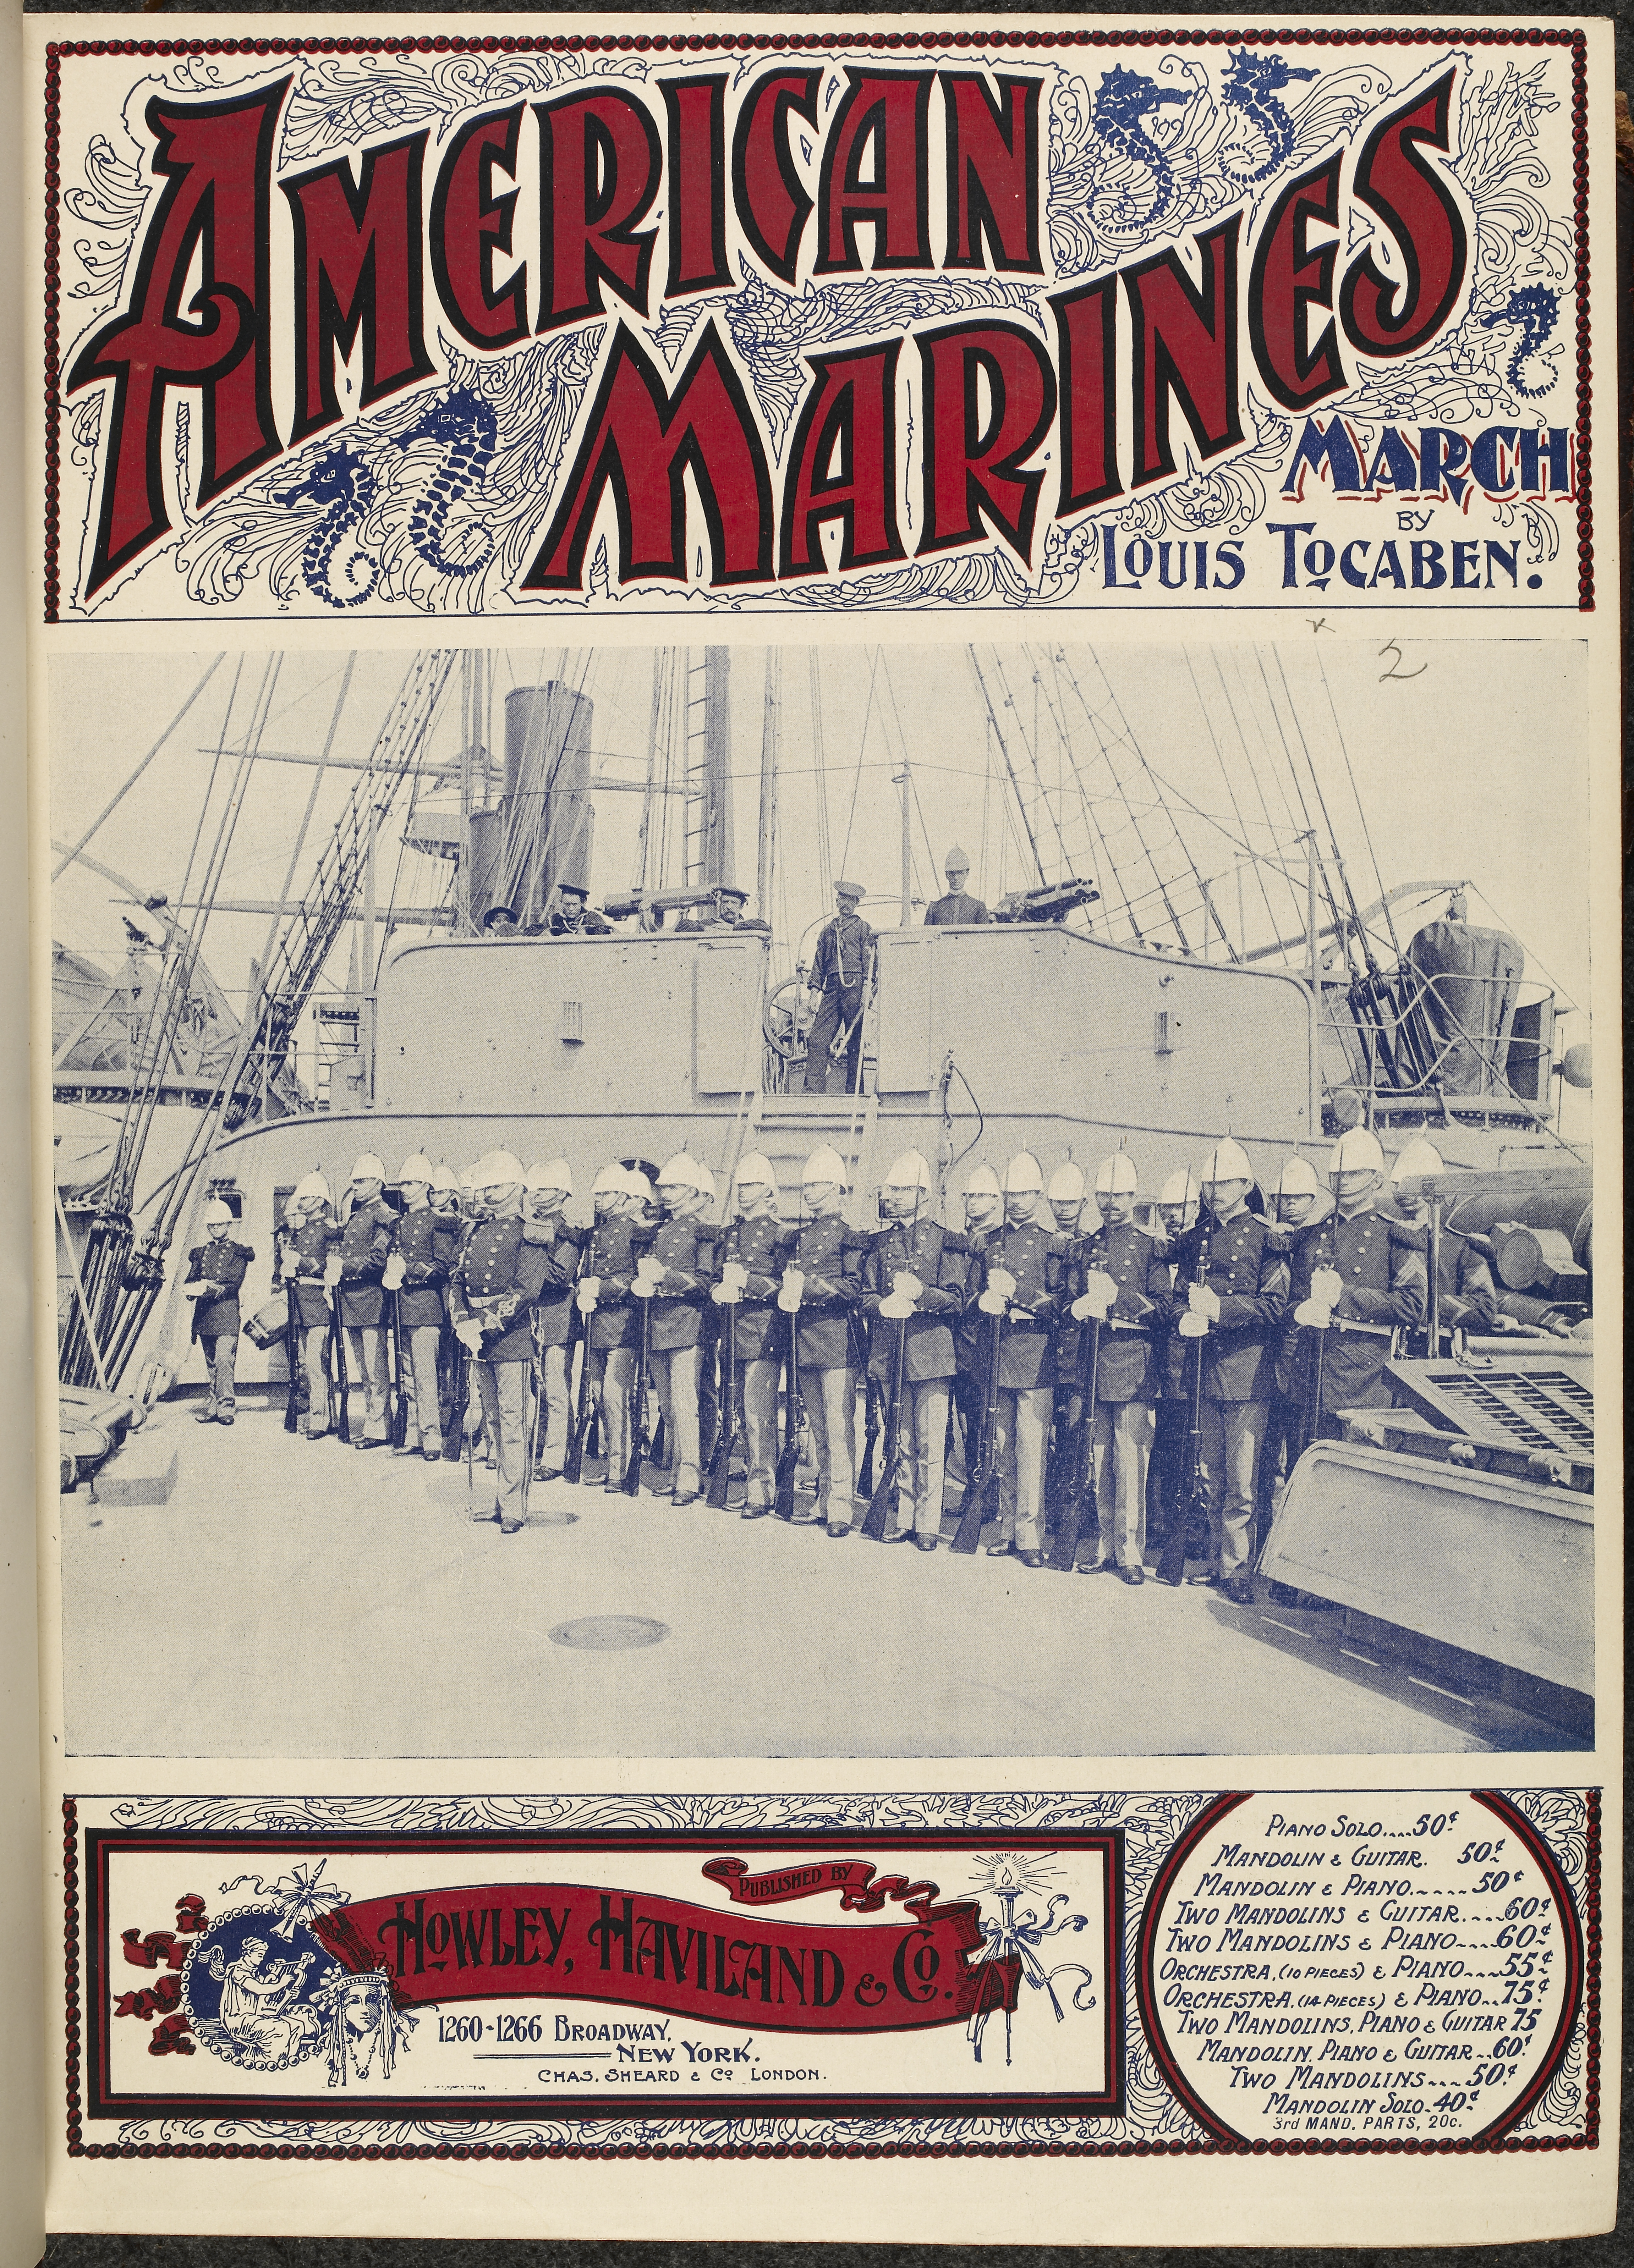 Front cover of illustrated music score. American military music. A military march or piano solo. Marines on the deck of a ship.